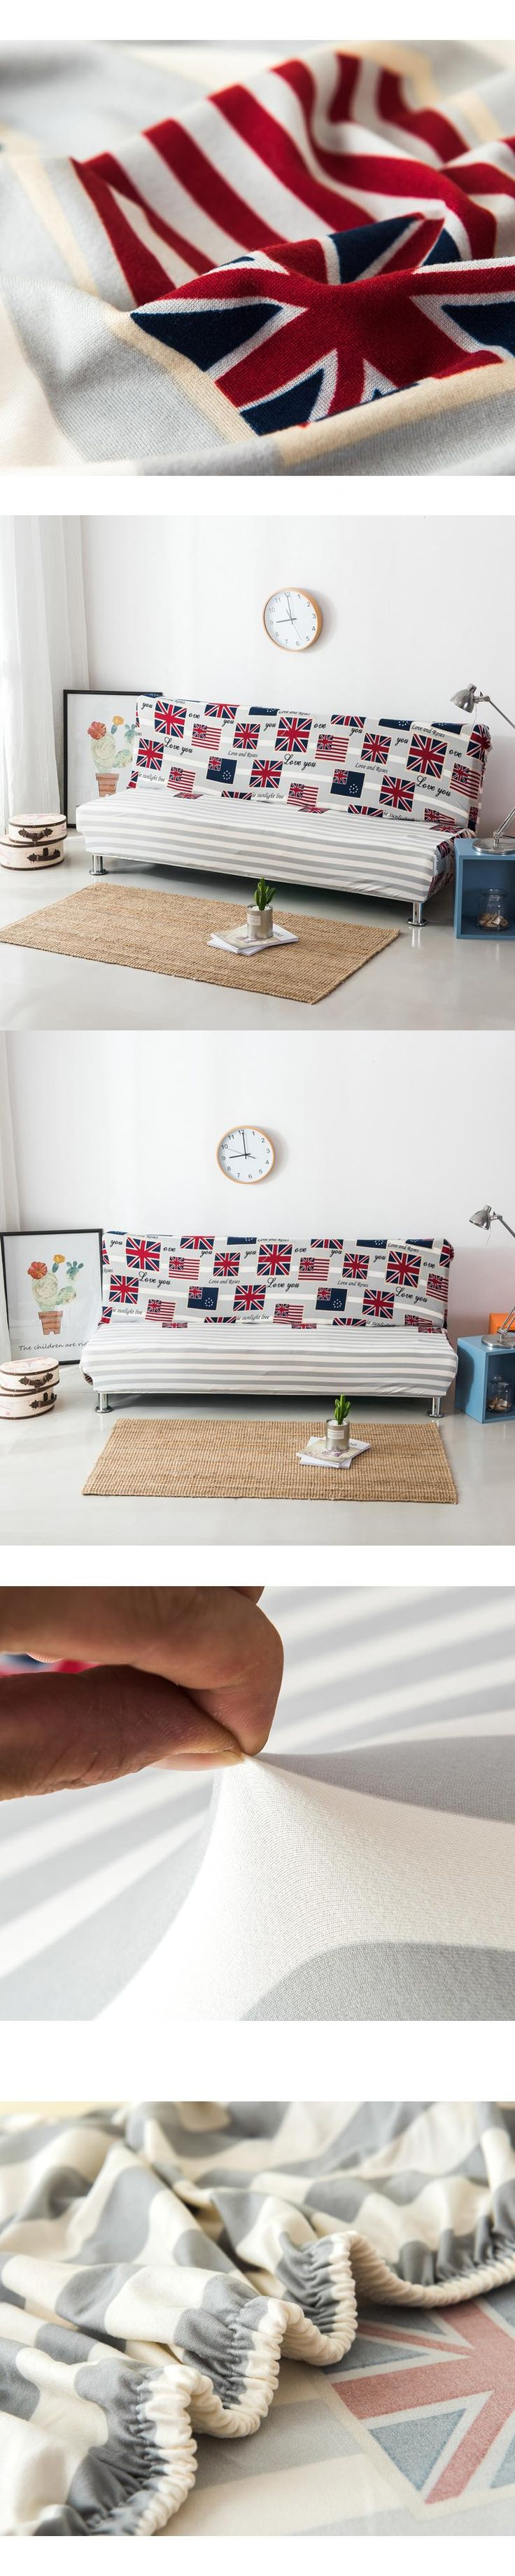 folding sofa bed covers elastic no handrail printed sofa covers slipcovers cheap spandex sofa covers for